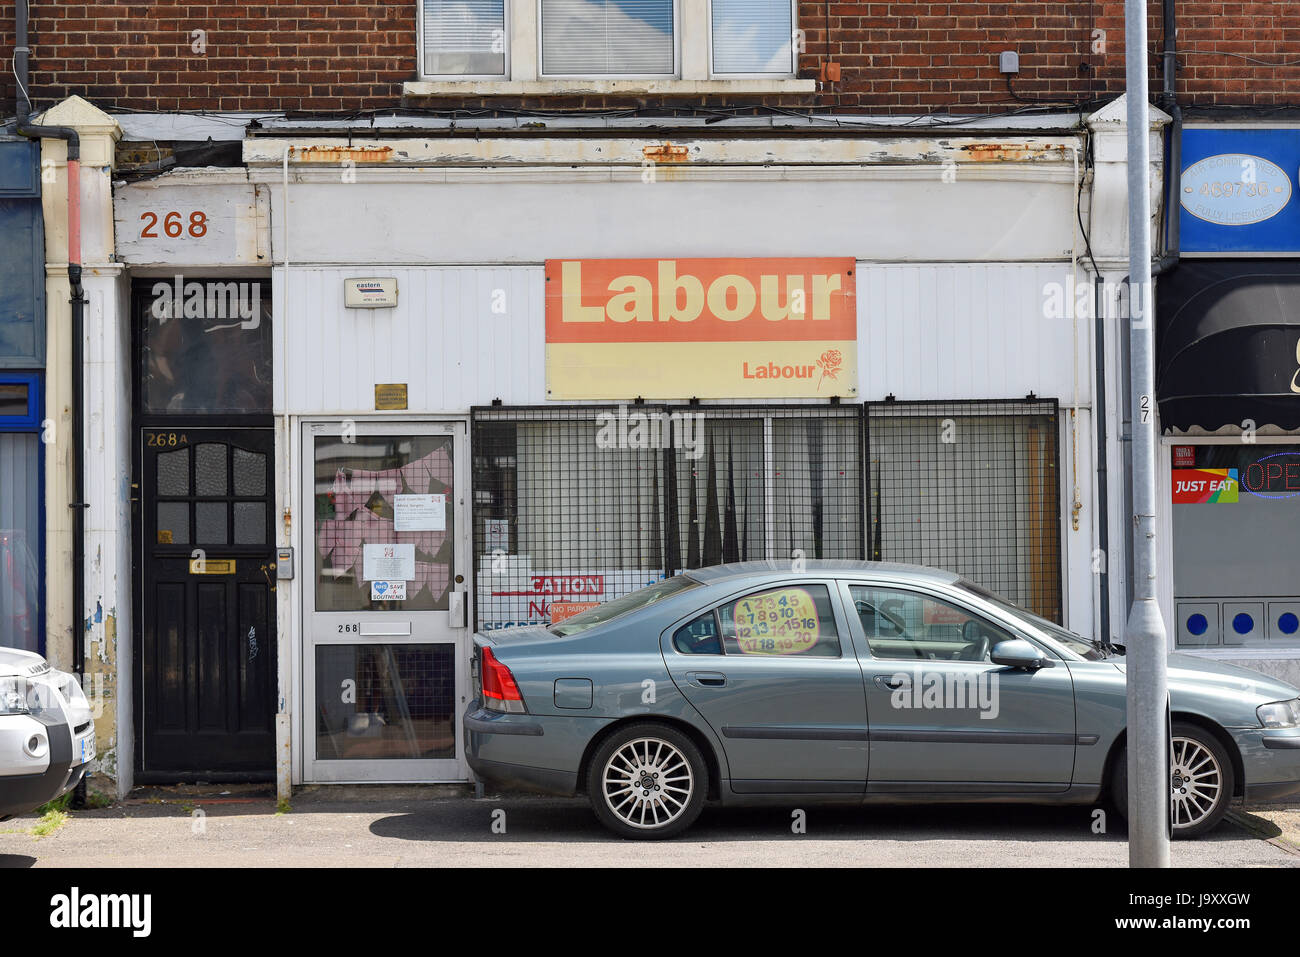 Labour party office for the Southend on Sea area, Essex, looking run down. Space for copy. 268 Sutton Road - Stock Image